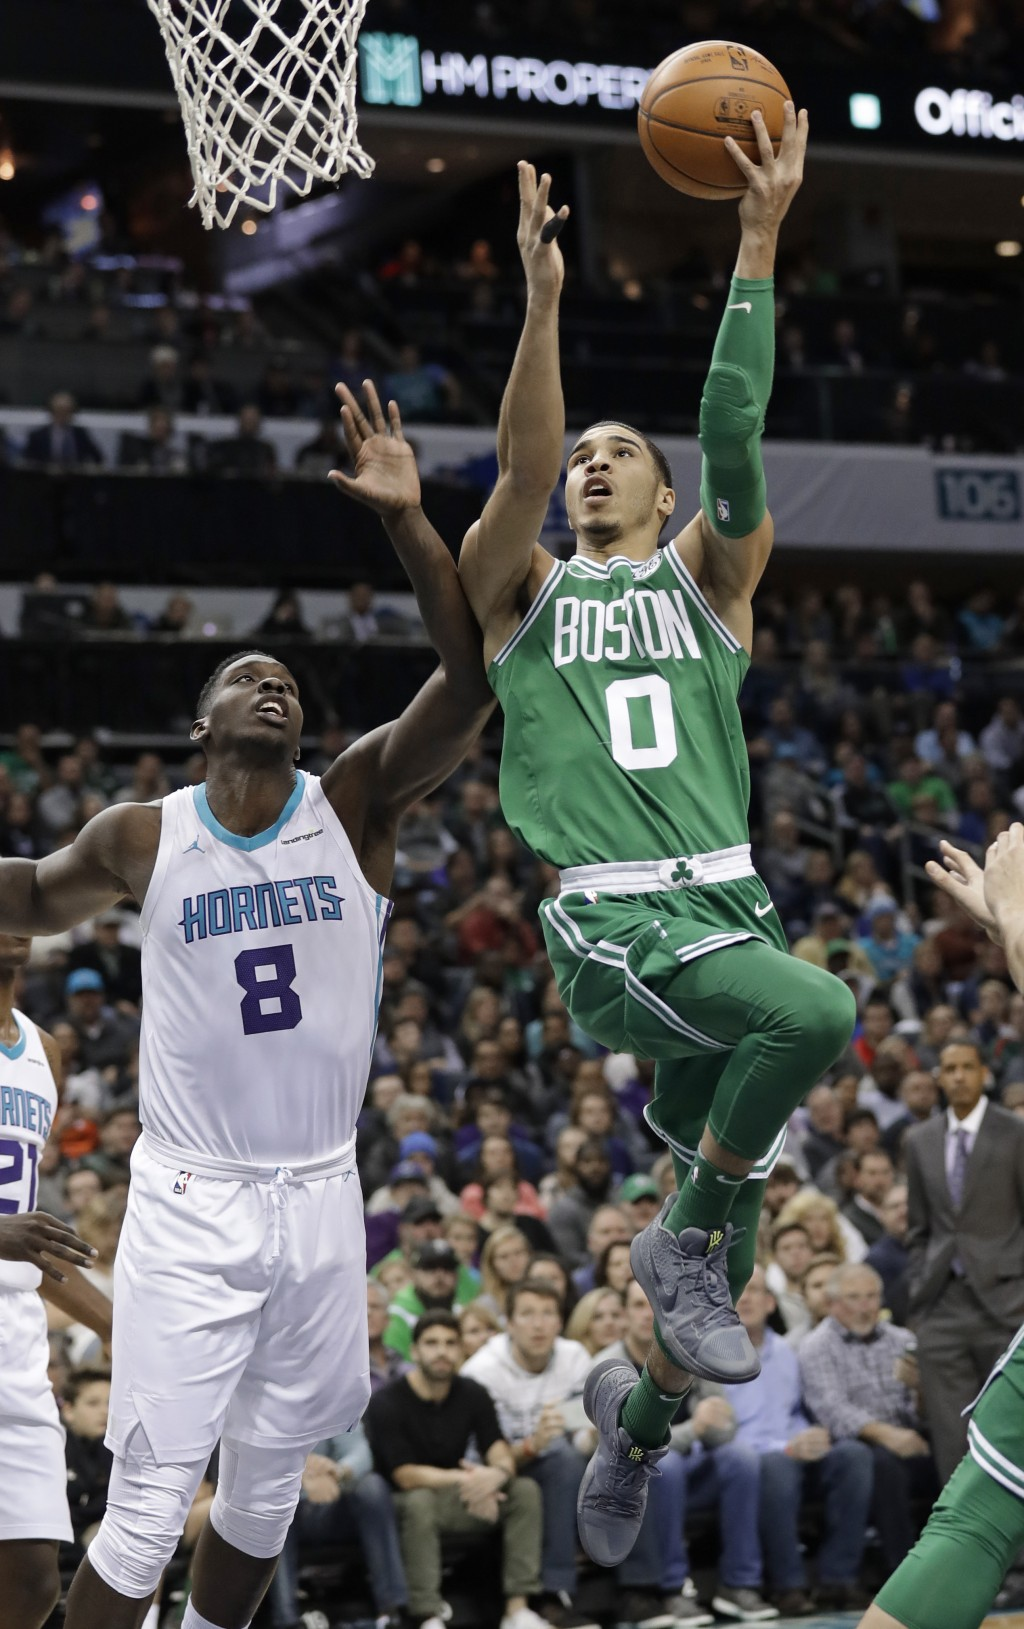 Boston Celtics' Jayson Tatum (0) drives past Charlotte Hornets' Johnny O'Bryant III (8) during the first half of an NBA basketball game in Charlotte, ...